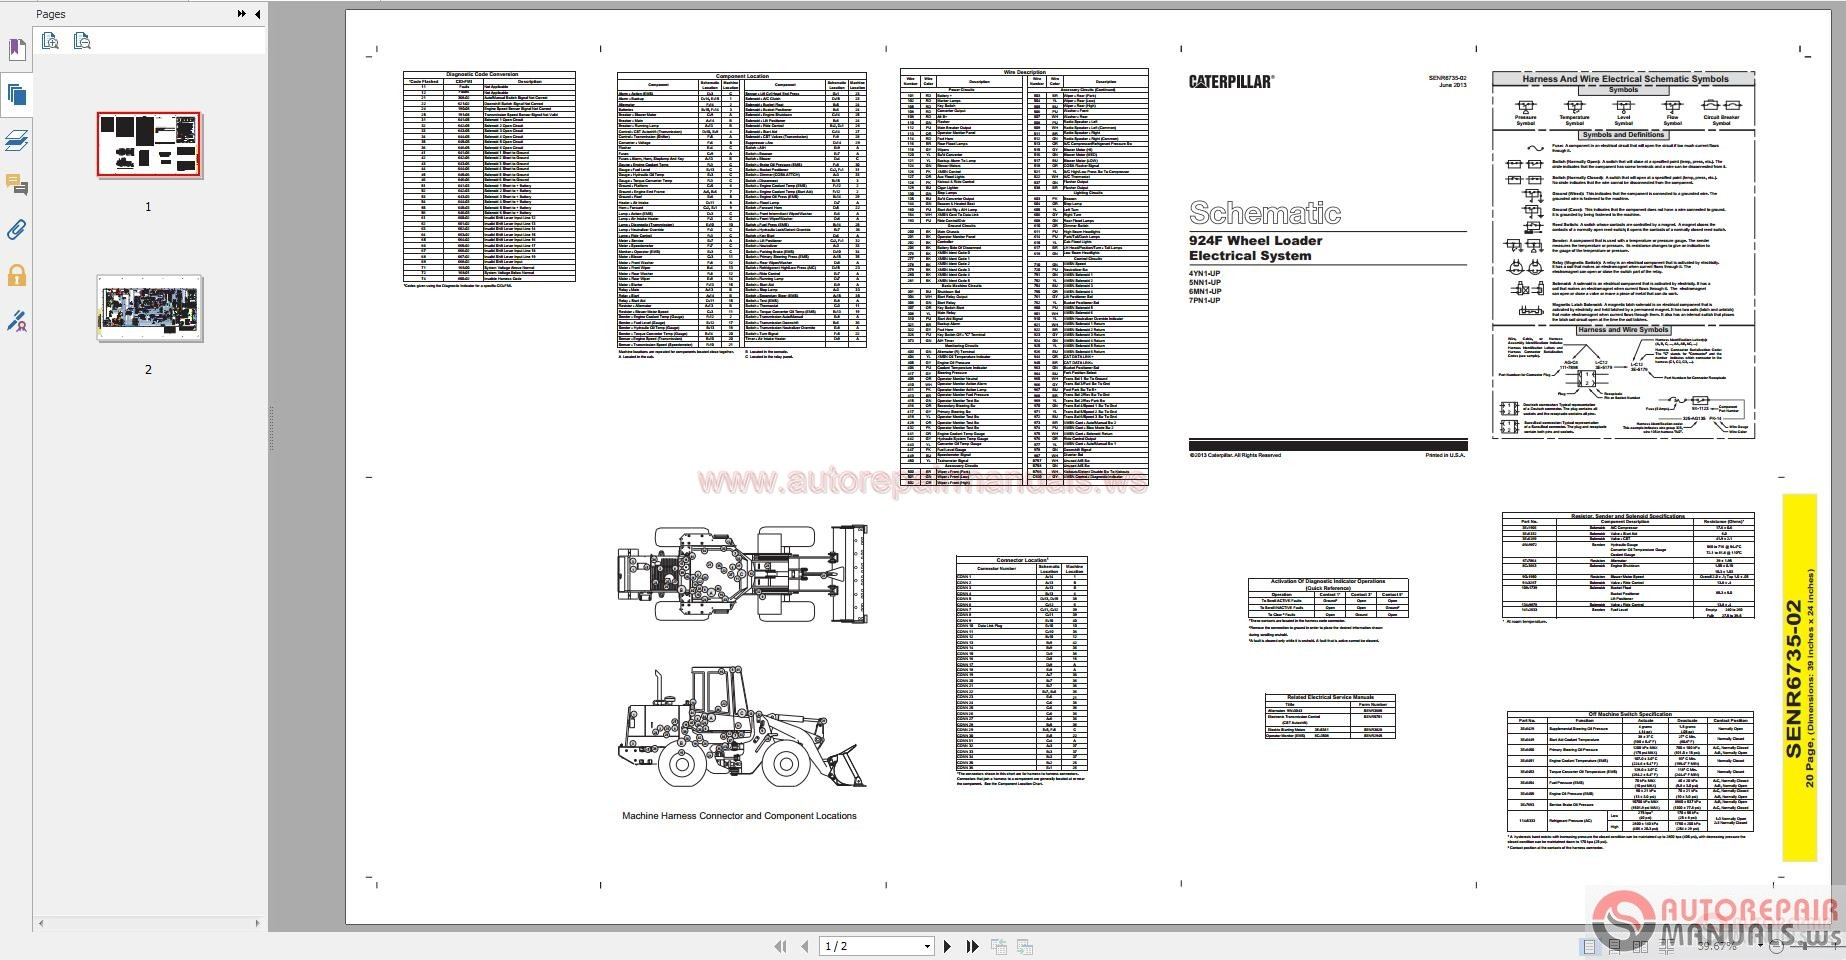 Caterpillar 3408c download Manual service